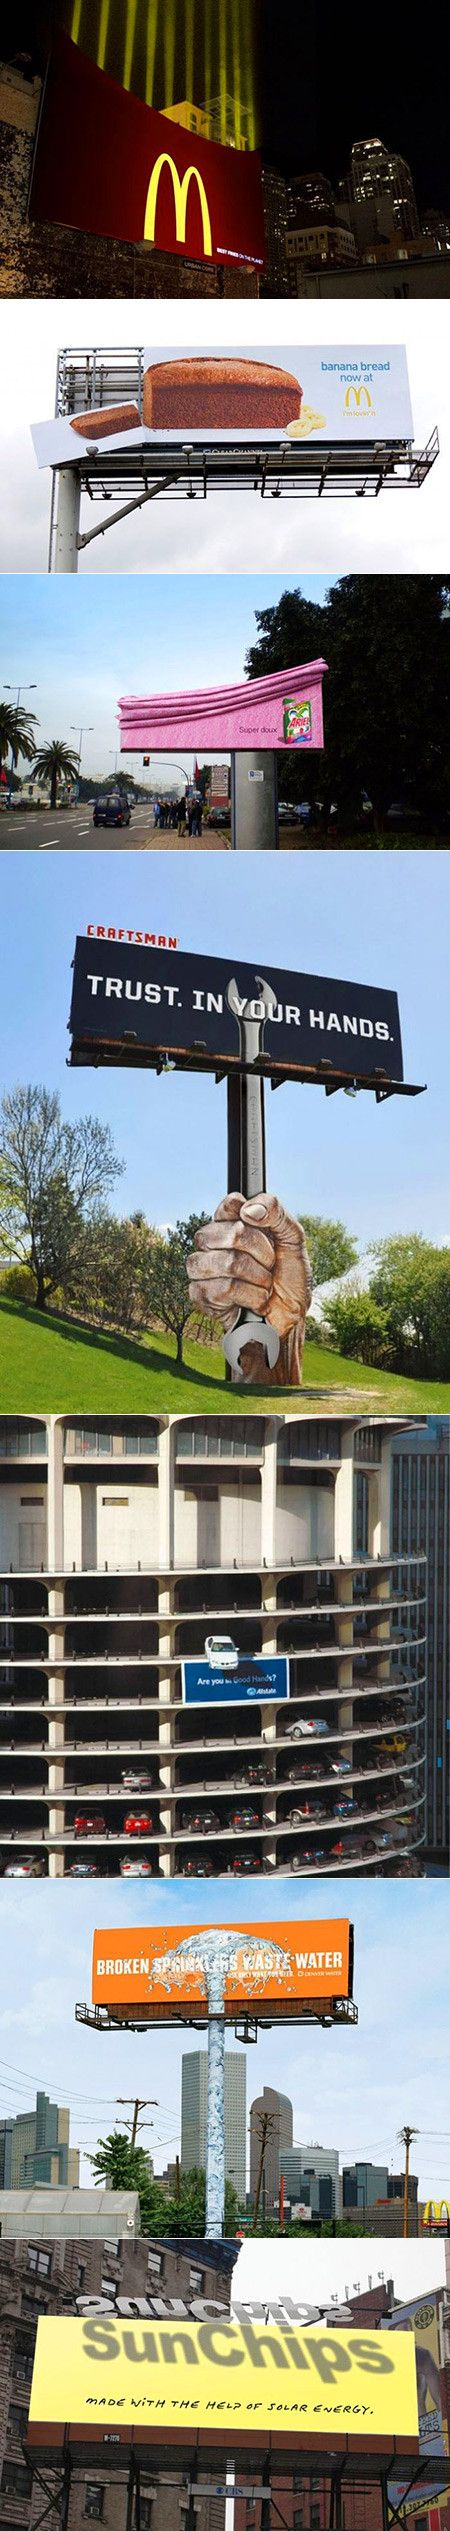 Most billboards are boring, these cool and geeky examples are most certainly not.